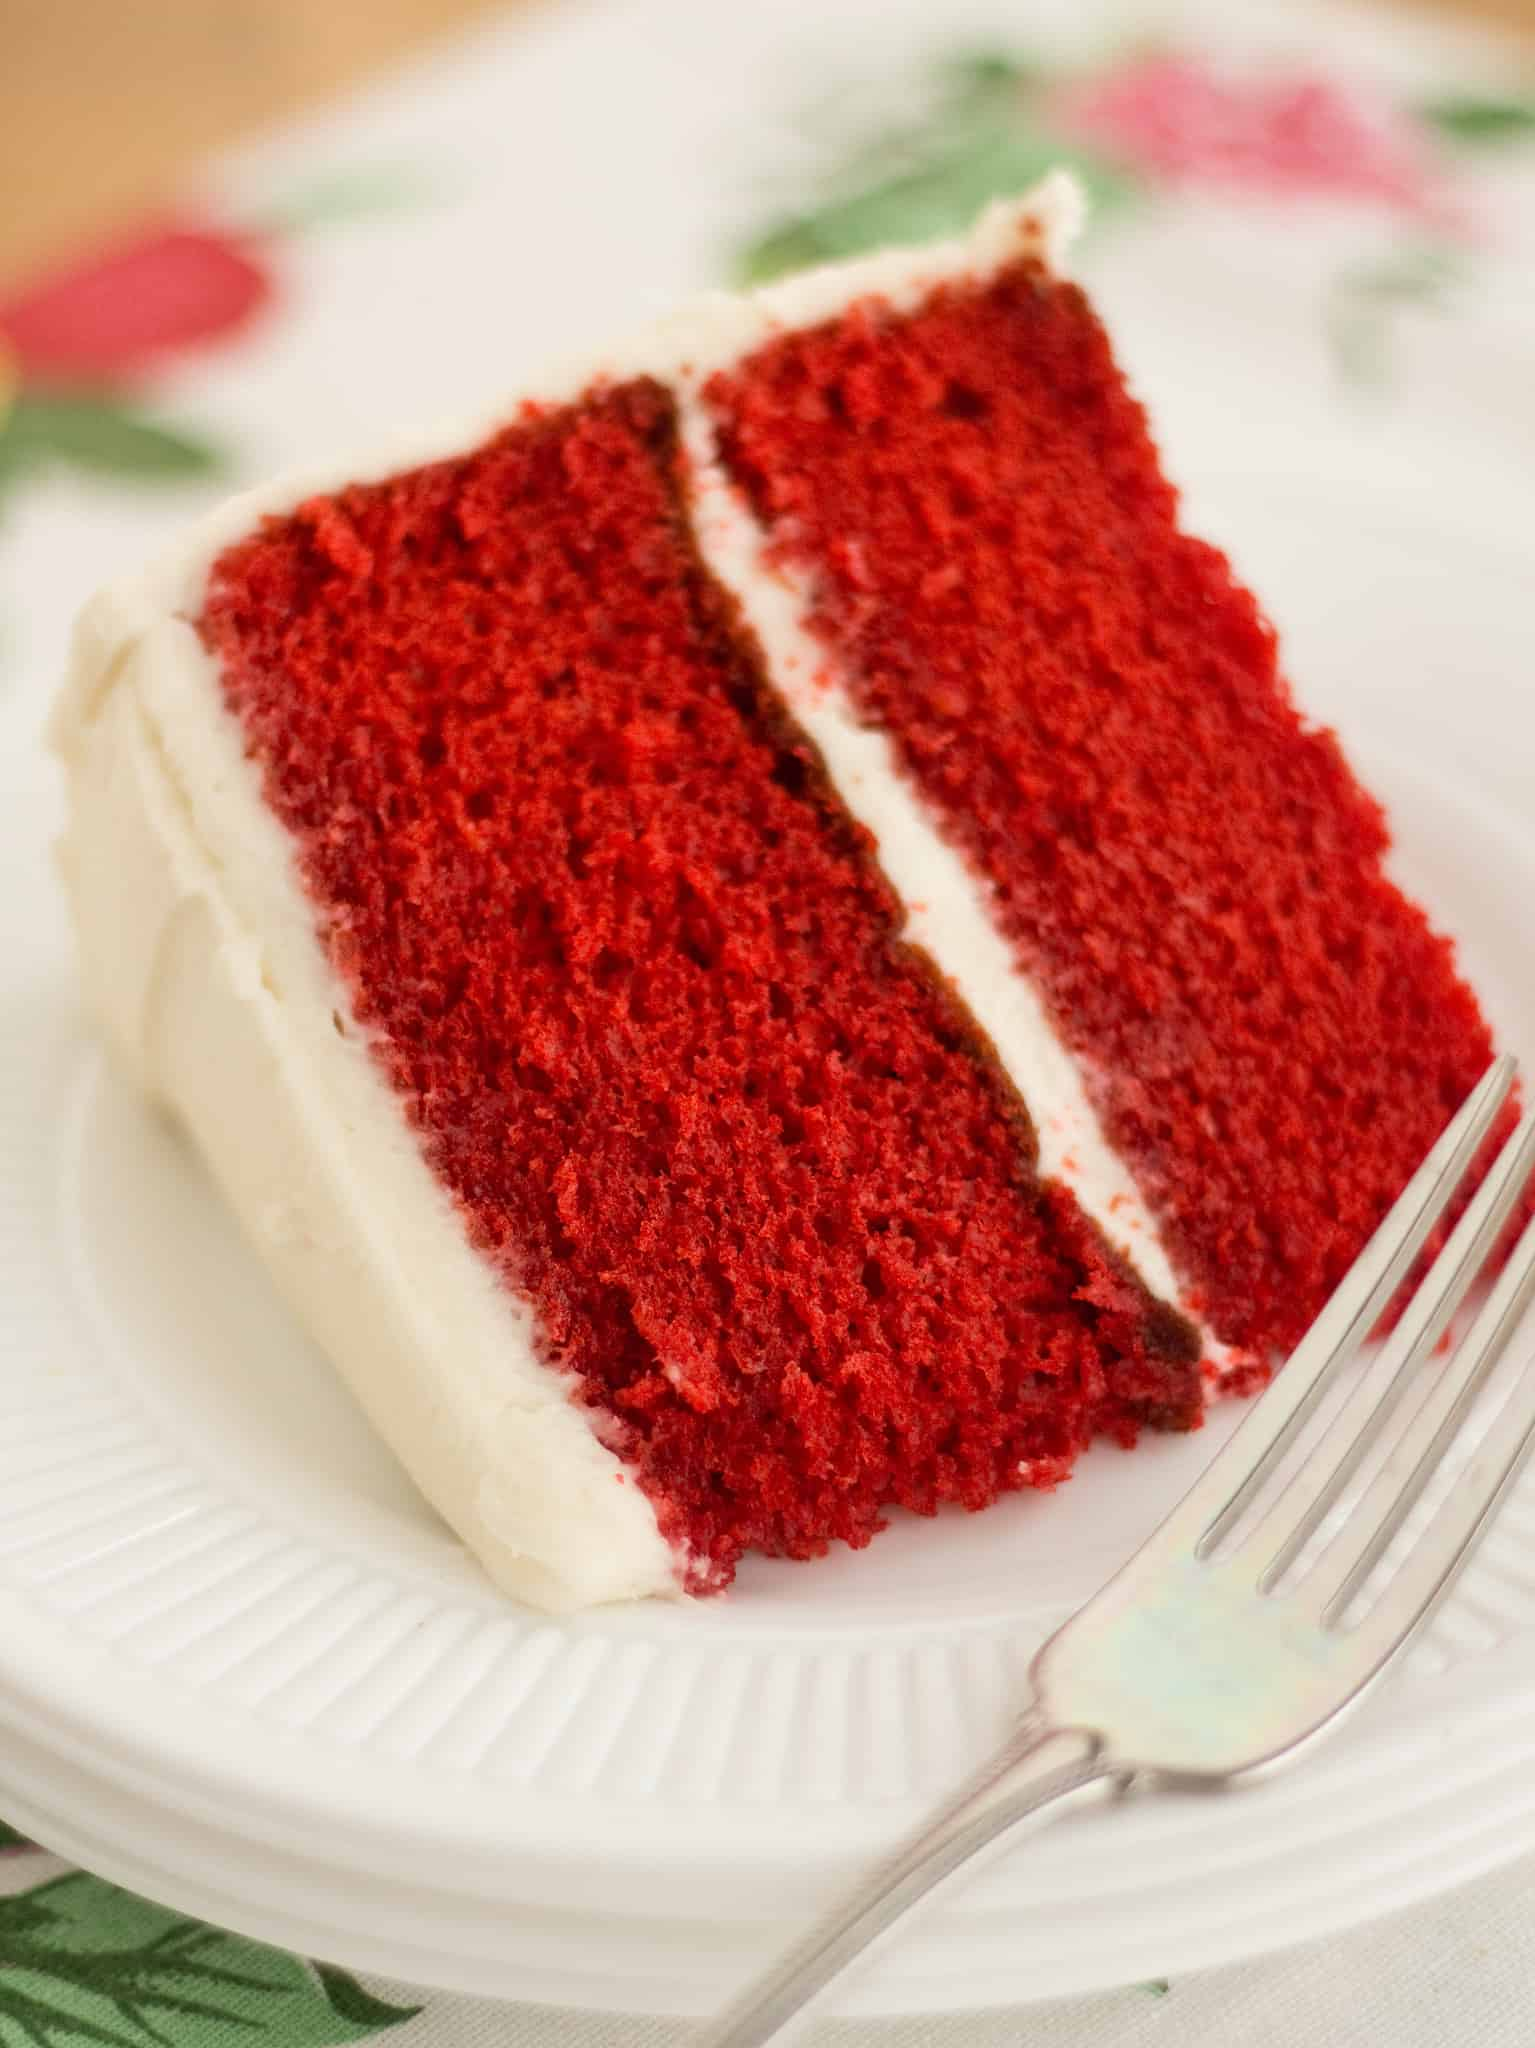 Making A Red Velvet Cake From Mix